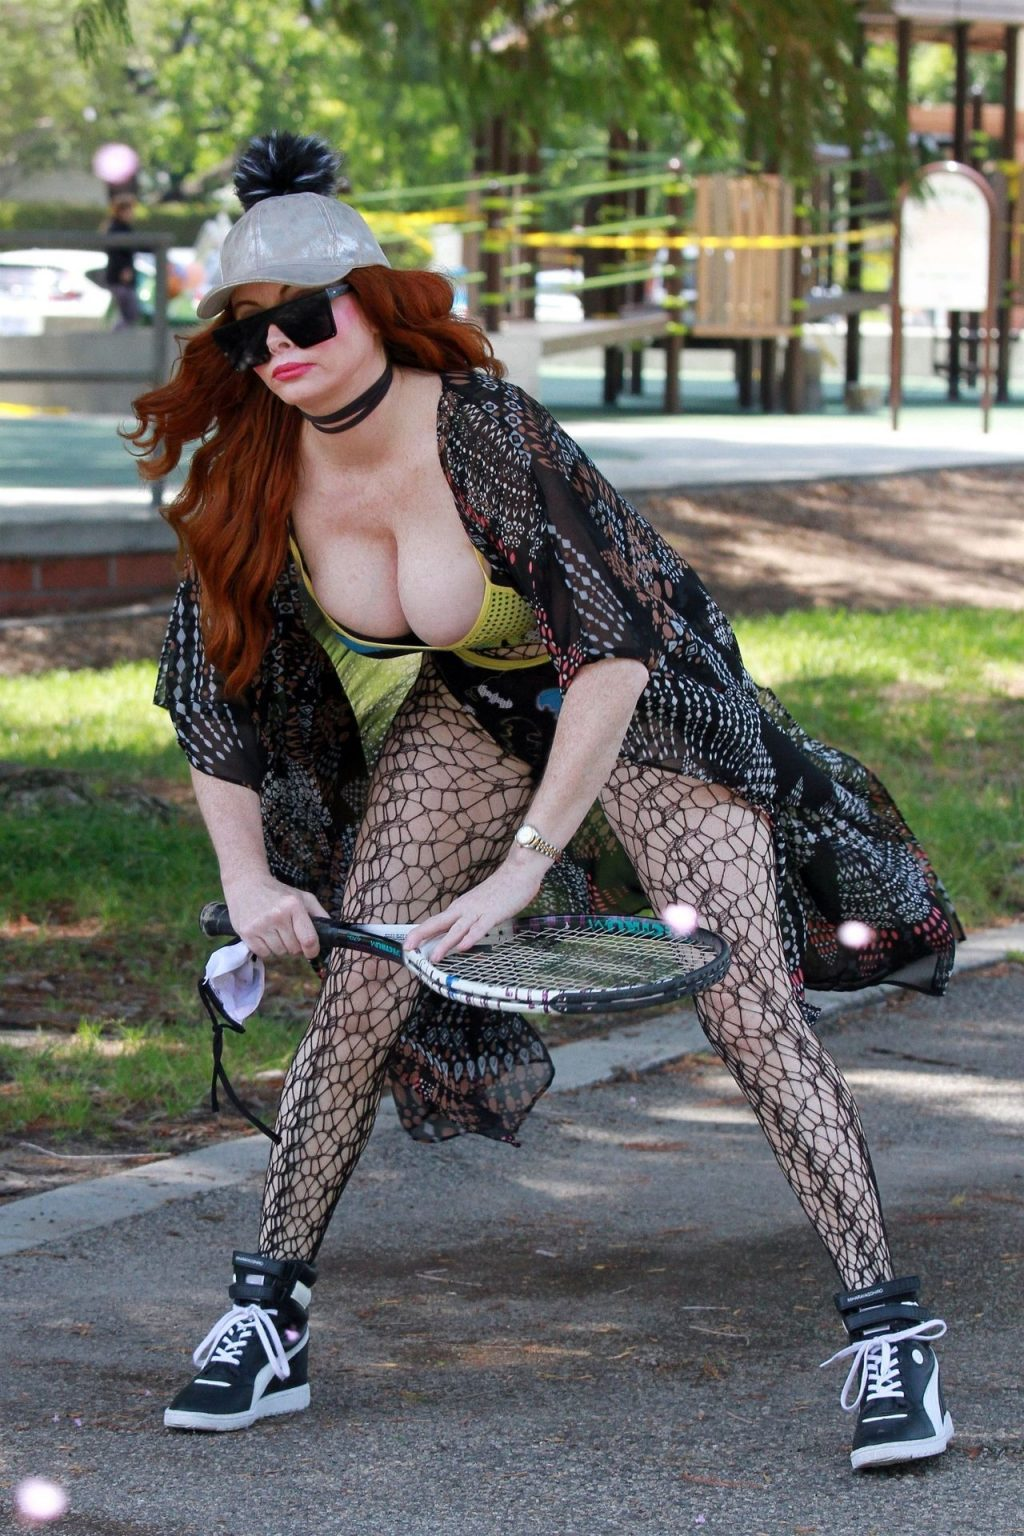 Game, Set, Match for Phoebe Price (44 Photos)